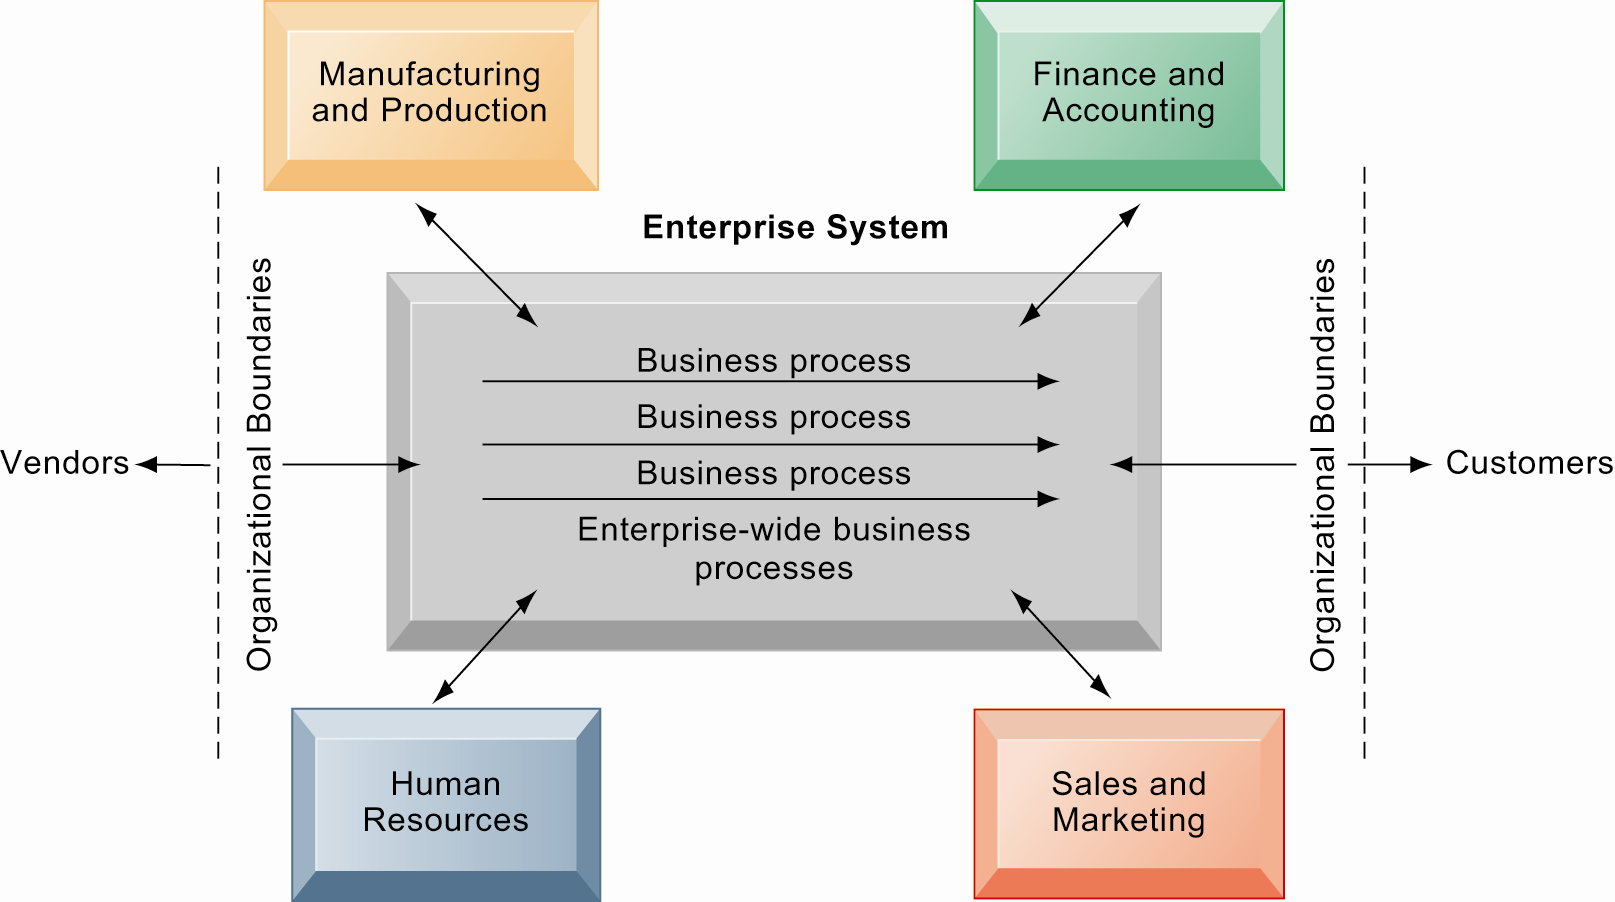 Enterprise Systems Enterprise systems integrate the key business processes of an entire firm into a single software system that enables information to flow seamlessly throughout the